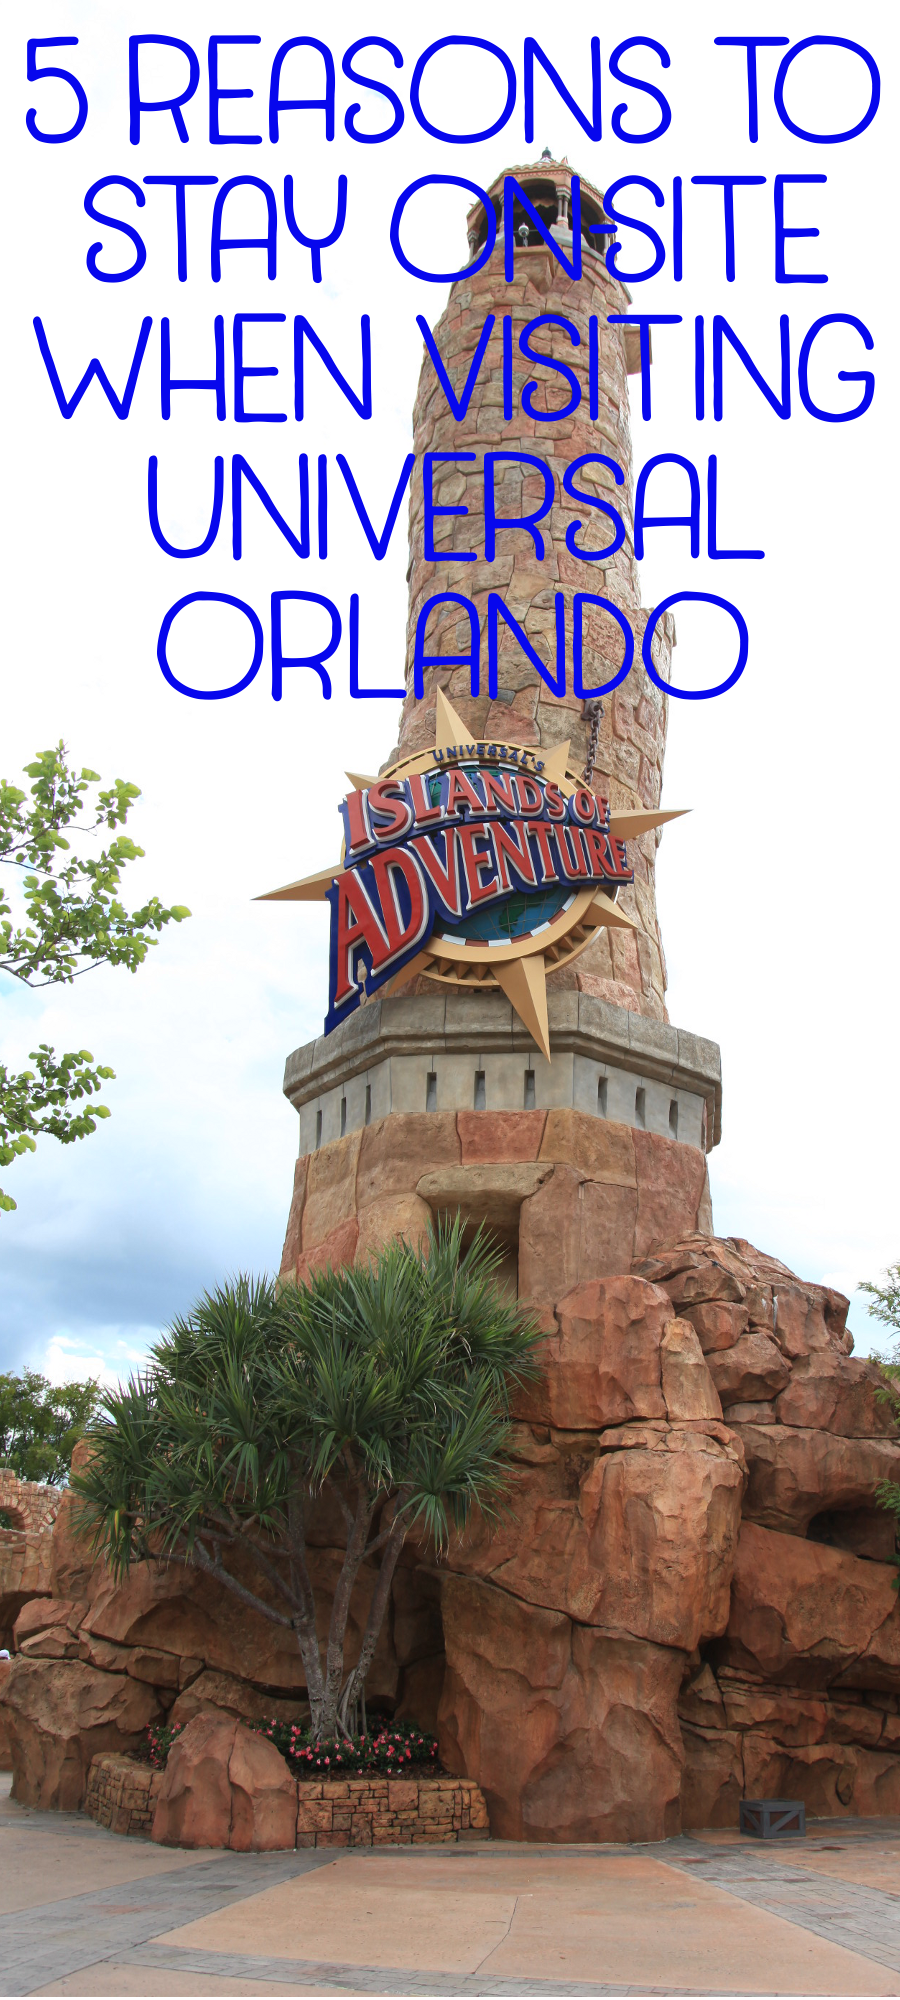 5 Reasons to Stay On-Site When Visiting Universal Orlando